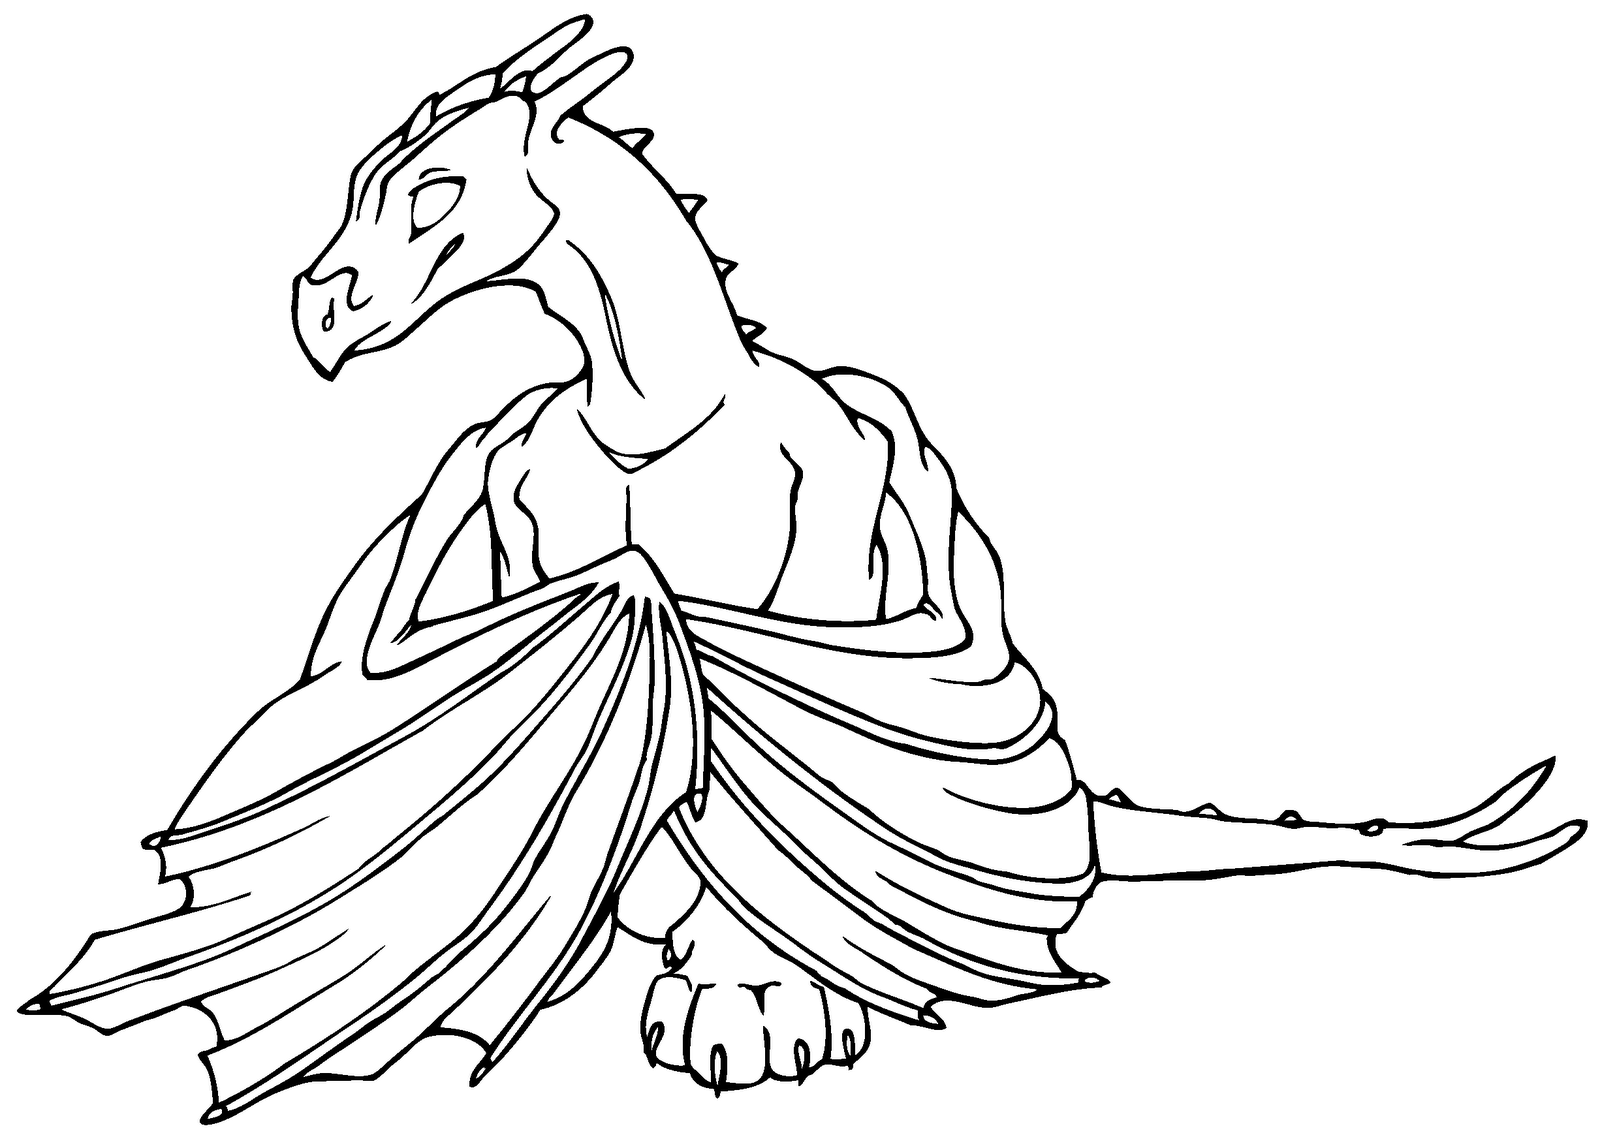 Printable coloring pages dragons - 9 Best Images Of Scary Dragon Coloring Pages Printable